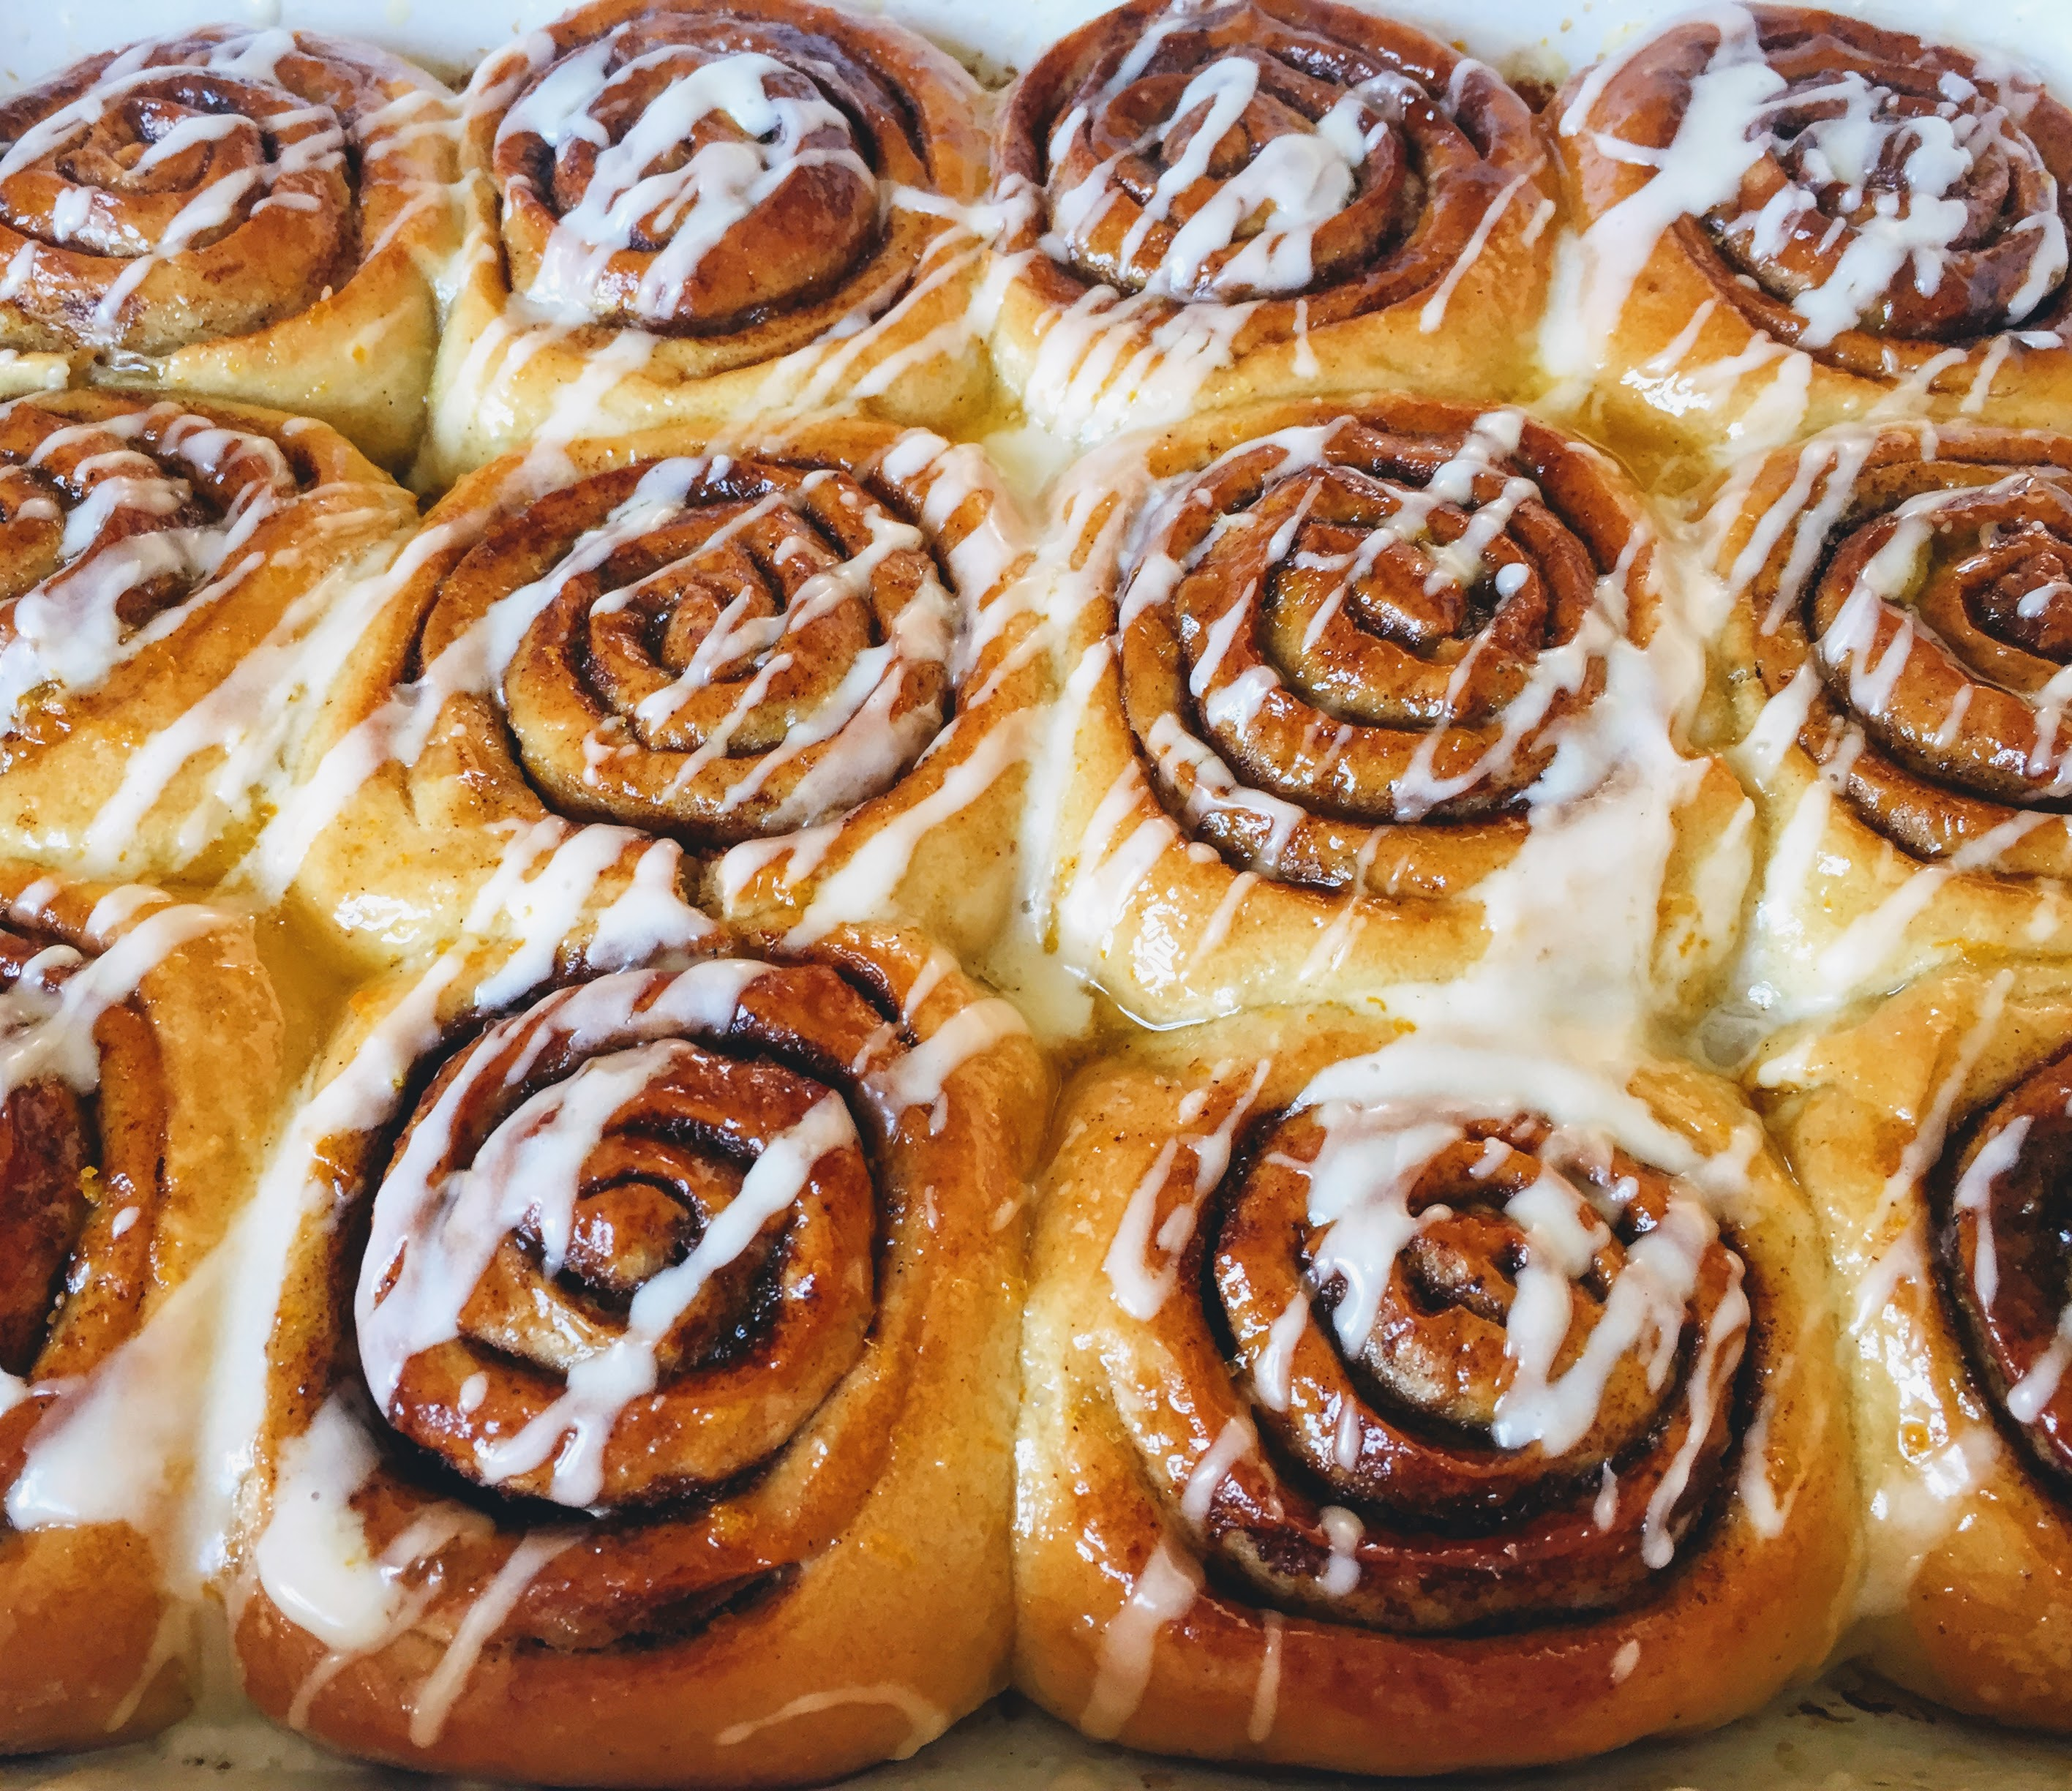 A close-up of the cinnamon rolls, glossy and sticky with the glaze and drizzled in white, orange-flavoured icing.